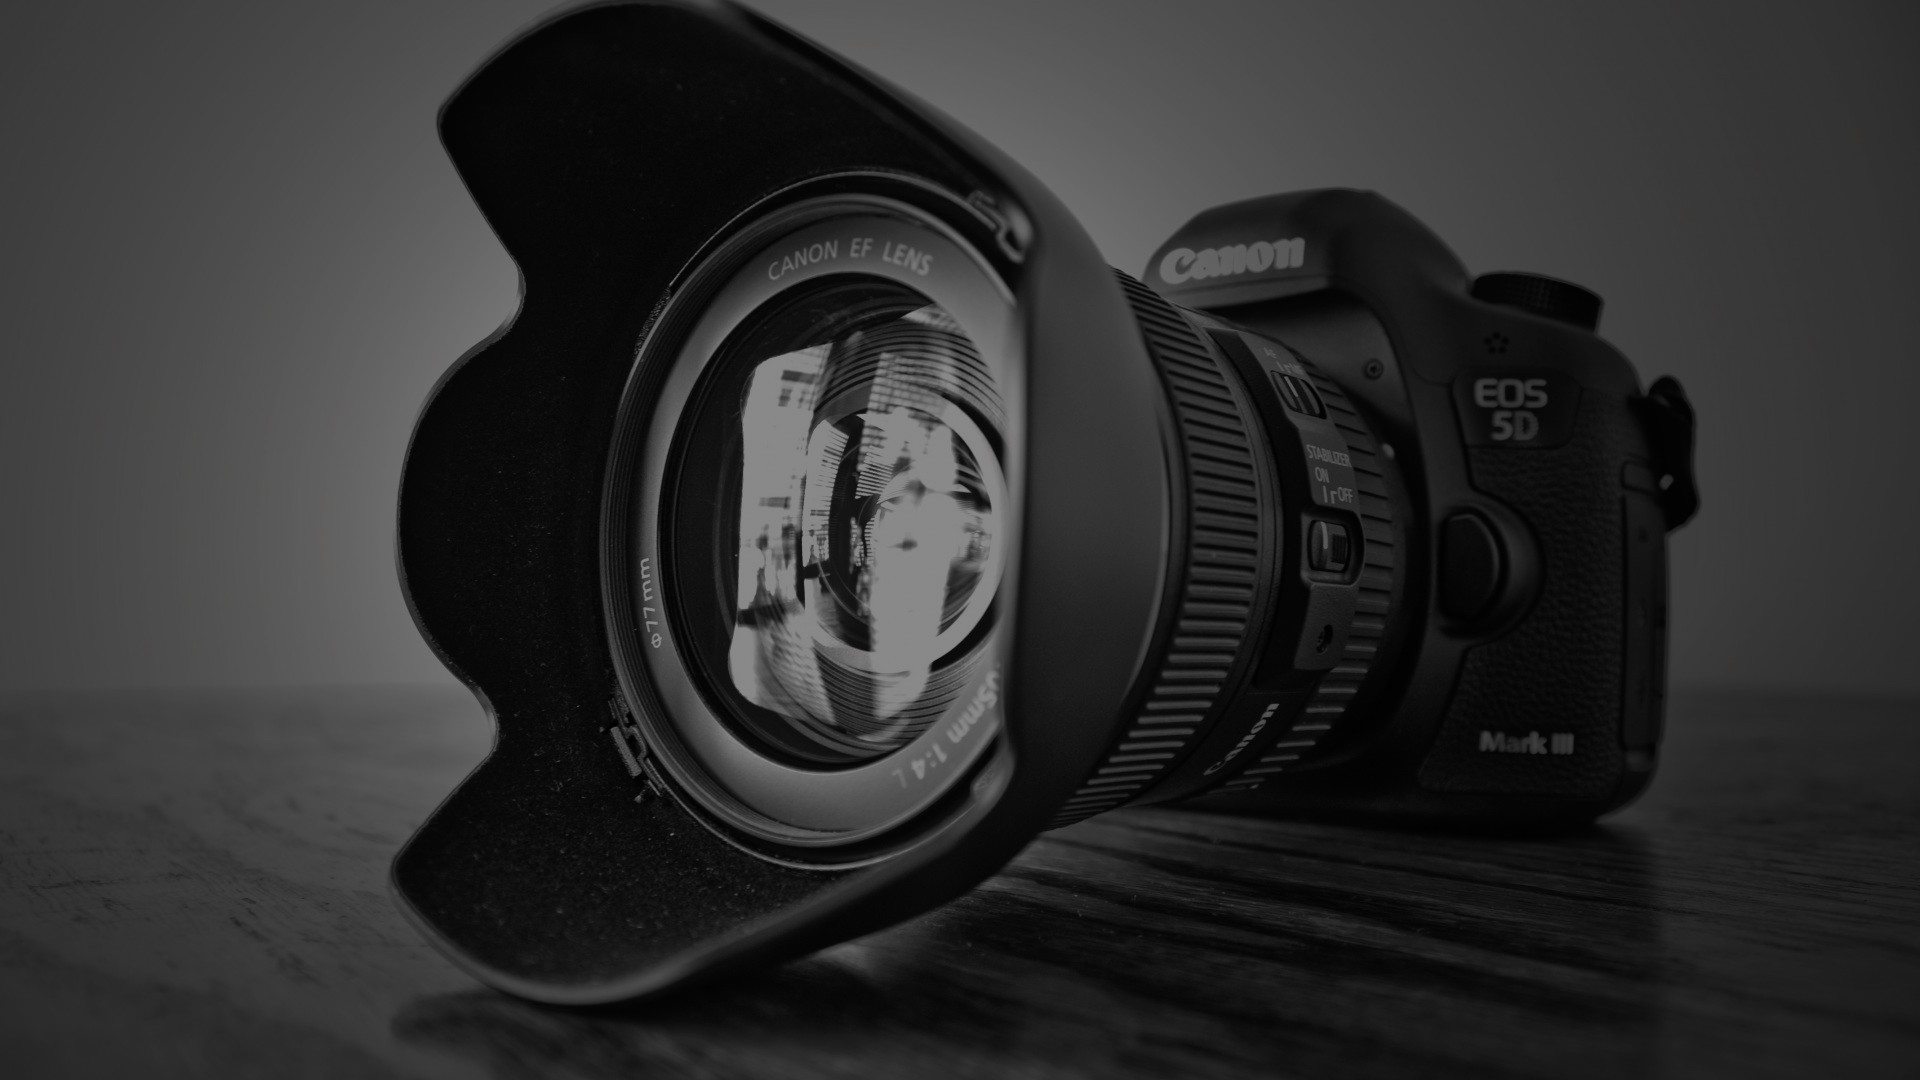 What Video Camera Should I Buy?